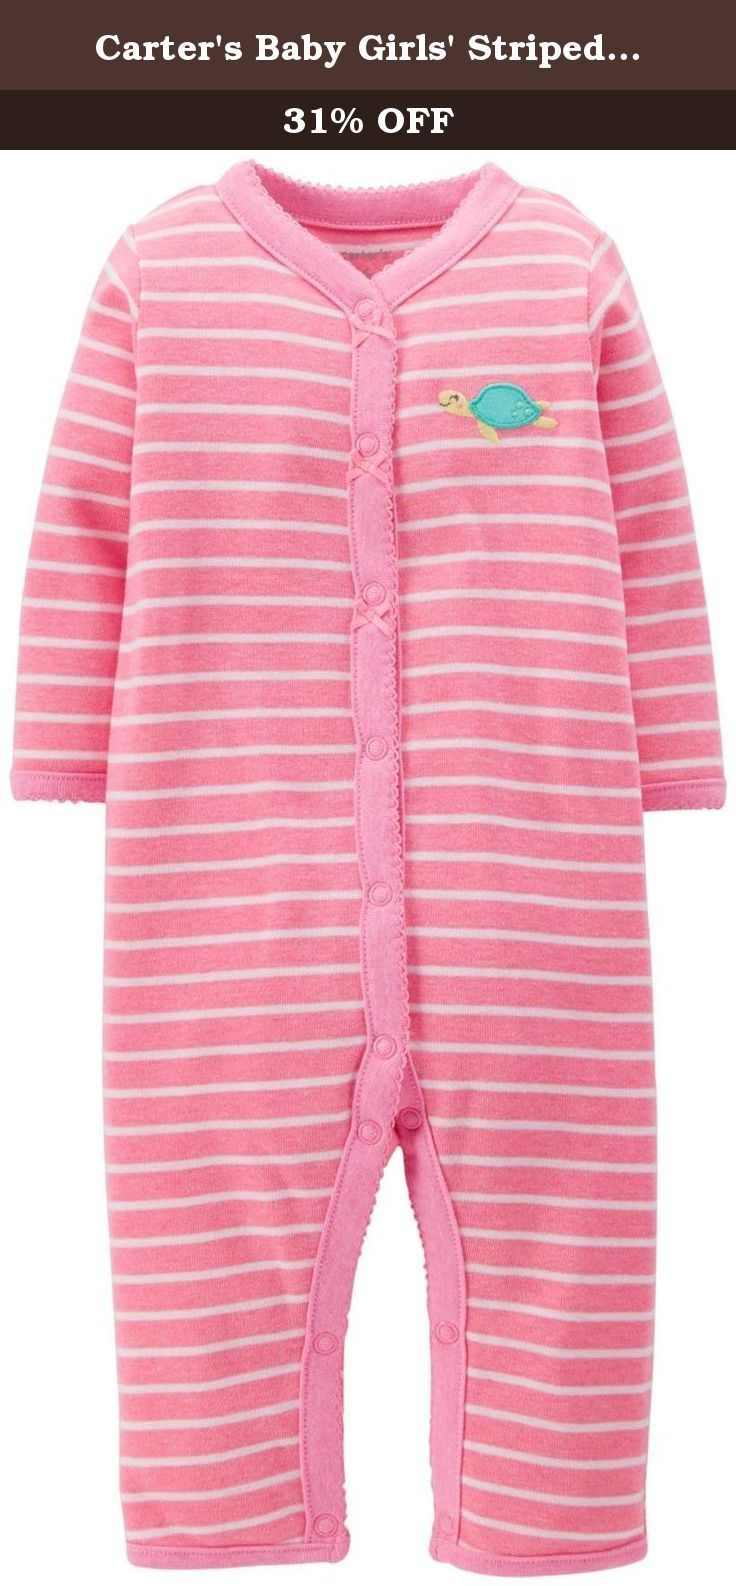 Carter S Baby Girls Striped Romper Baby Seaturtle 3 Months